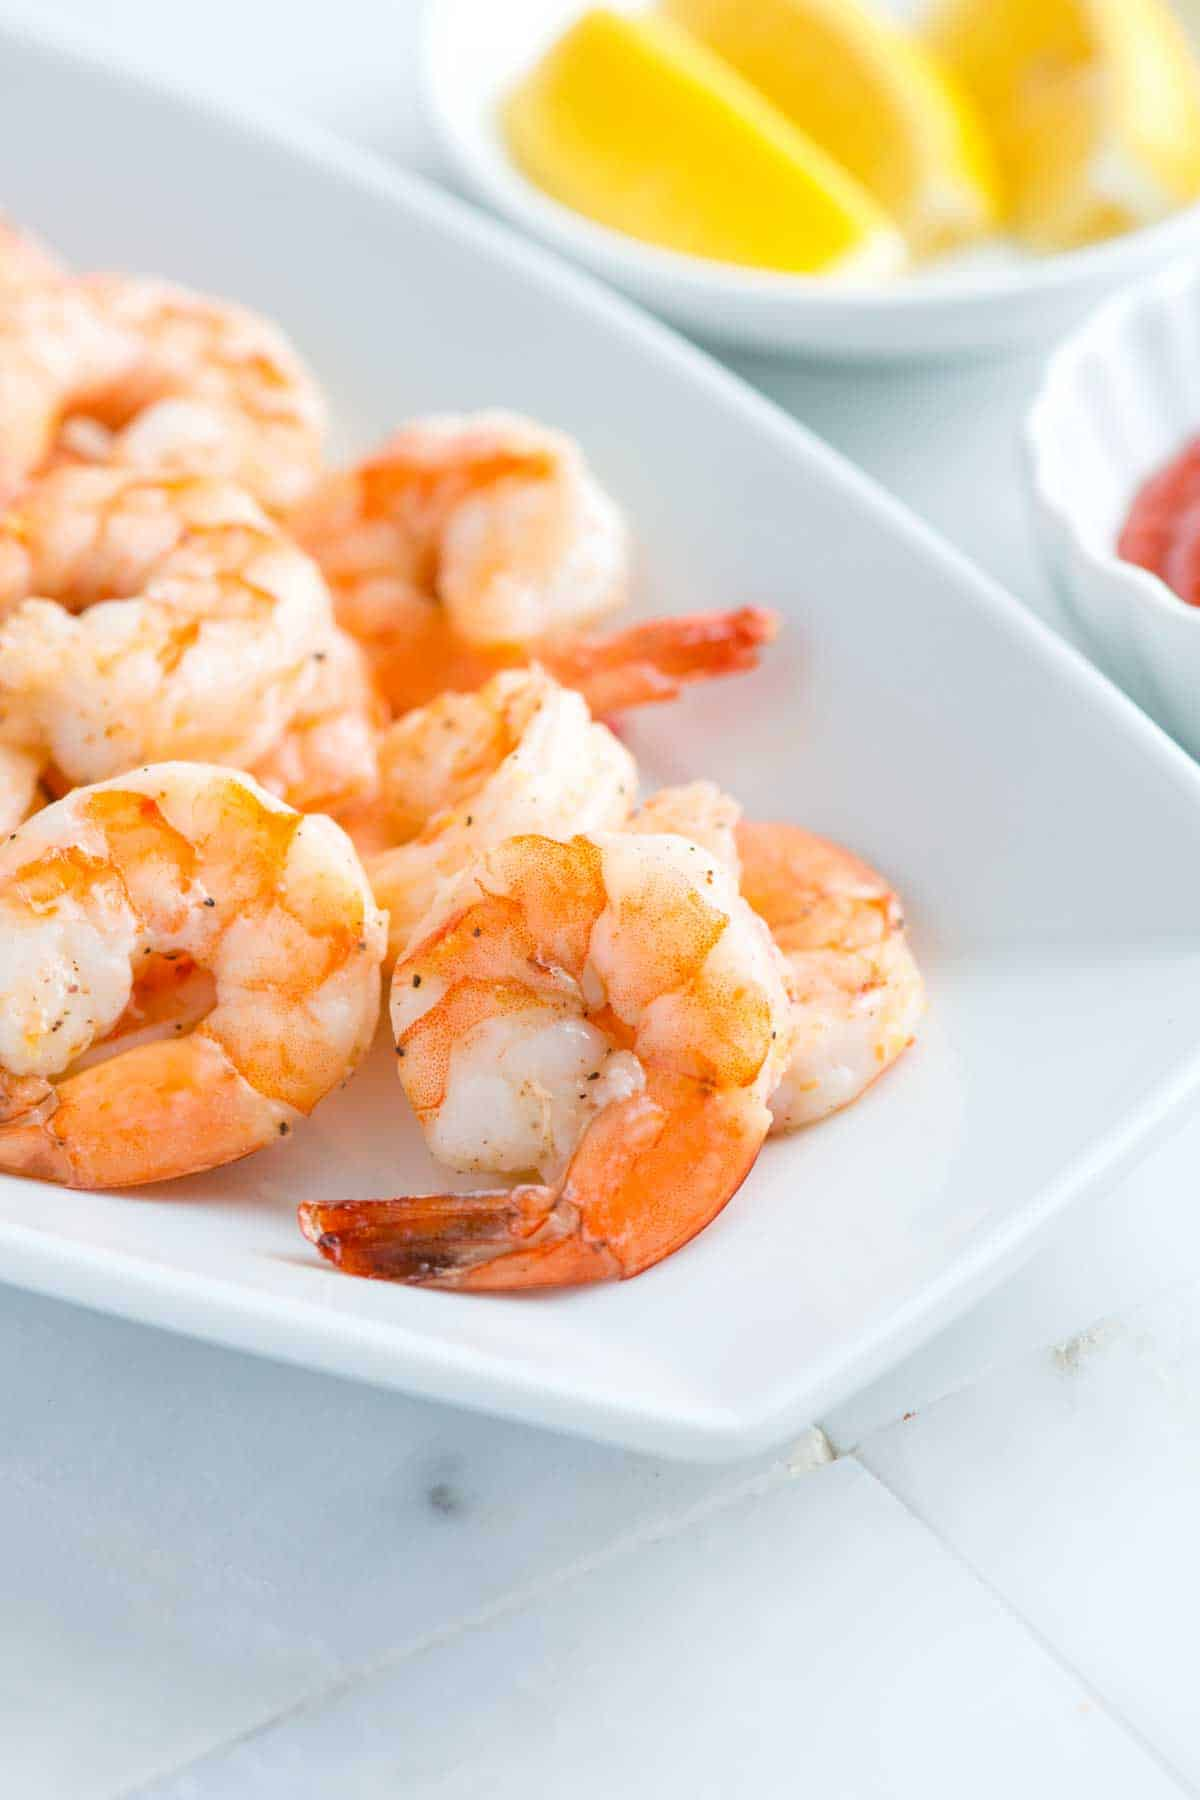 Use Your Oven to Make the Best Shrimp Cocktail